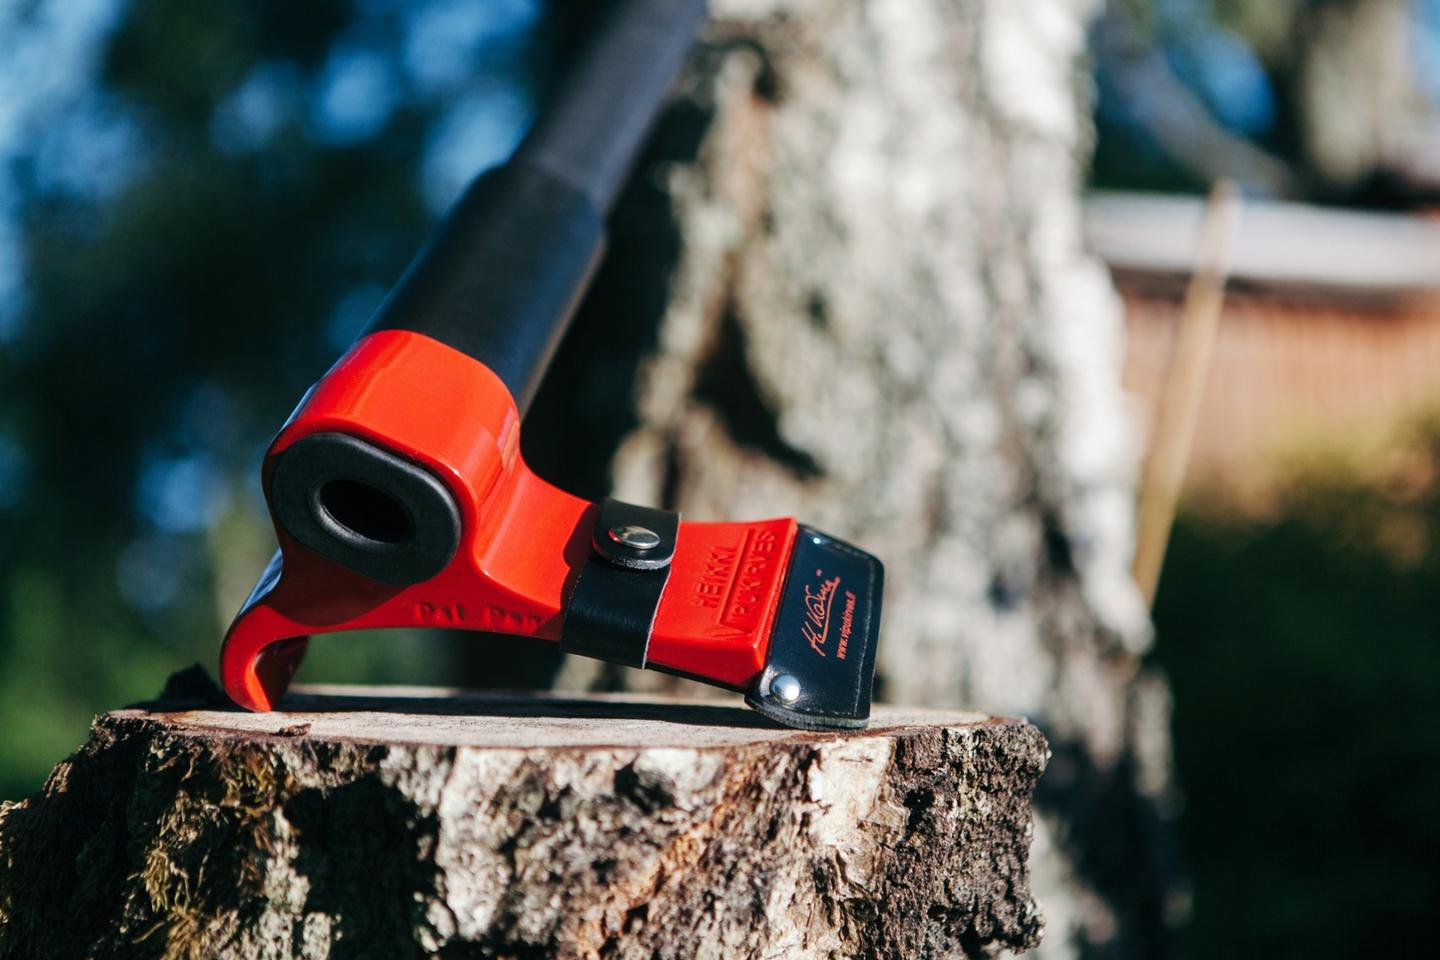 By harnessing leverage when its cutting edge strikes wood, the Leveraxe reportedly chops wood more easily and safely